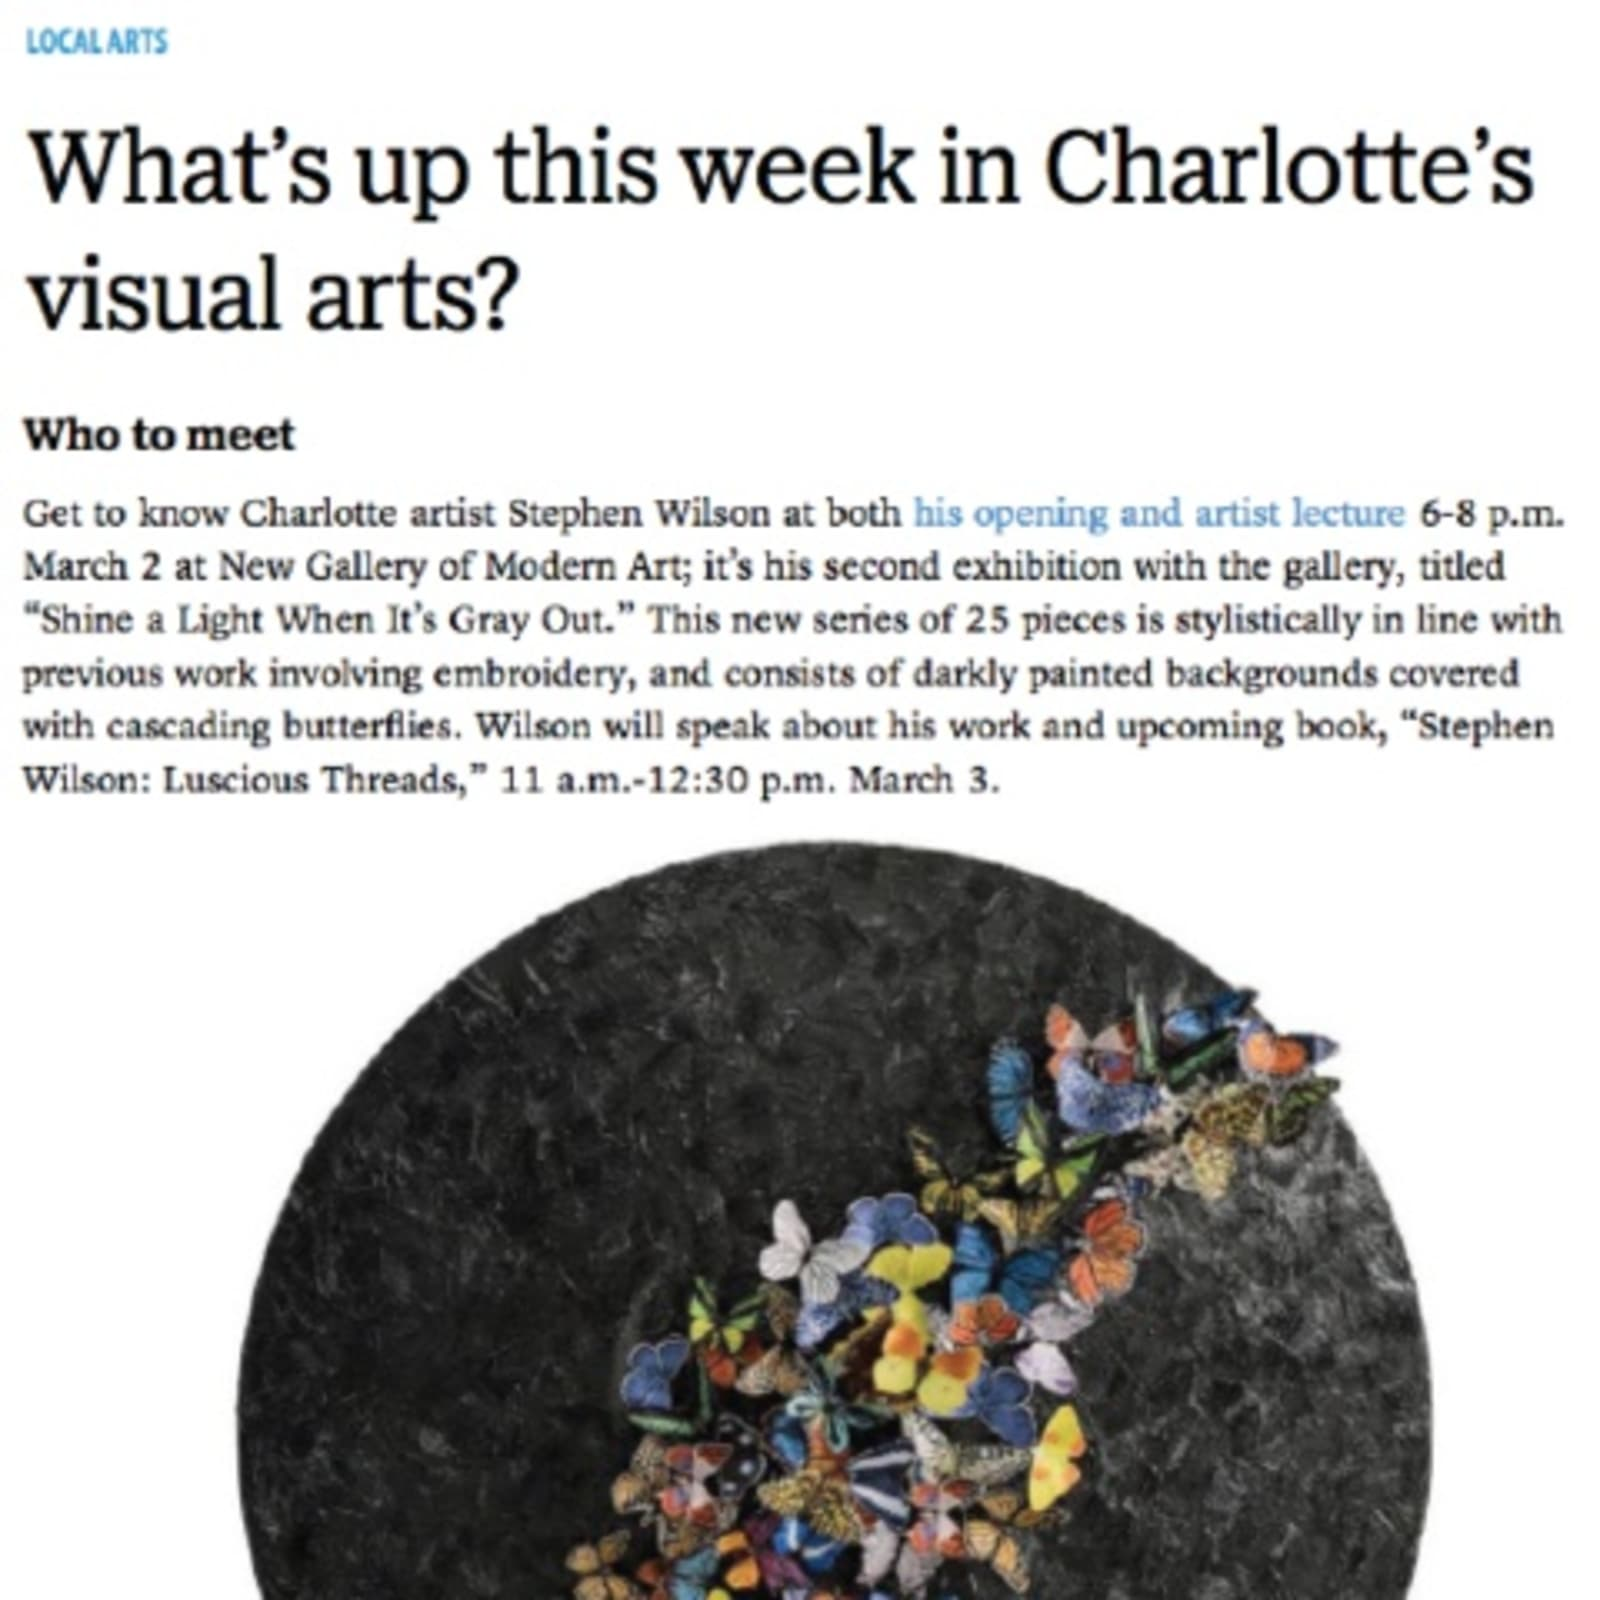 What's up this week in Charlotte's visual arts?